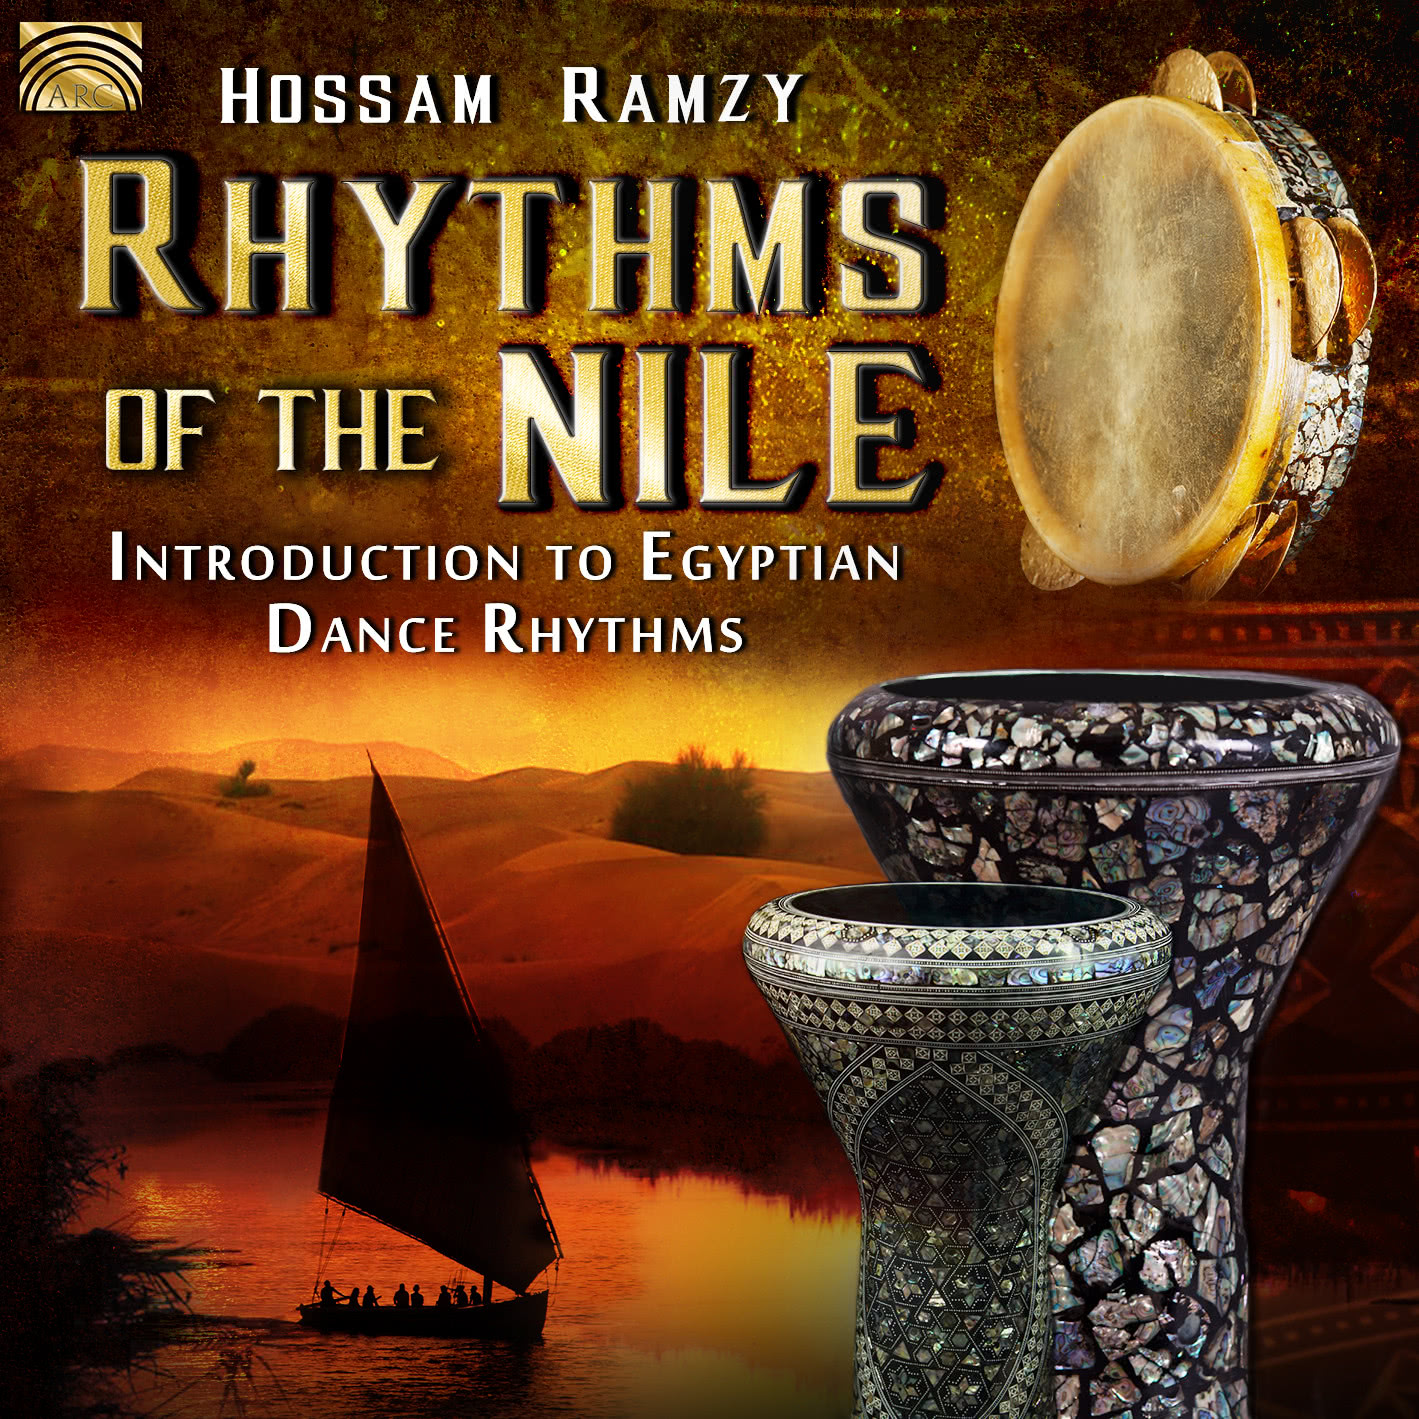 EUCD2659 Rhythms of the Nile - Introduction to Egyptian Dance Rhythms